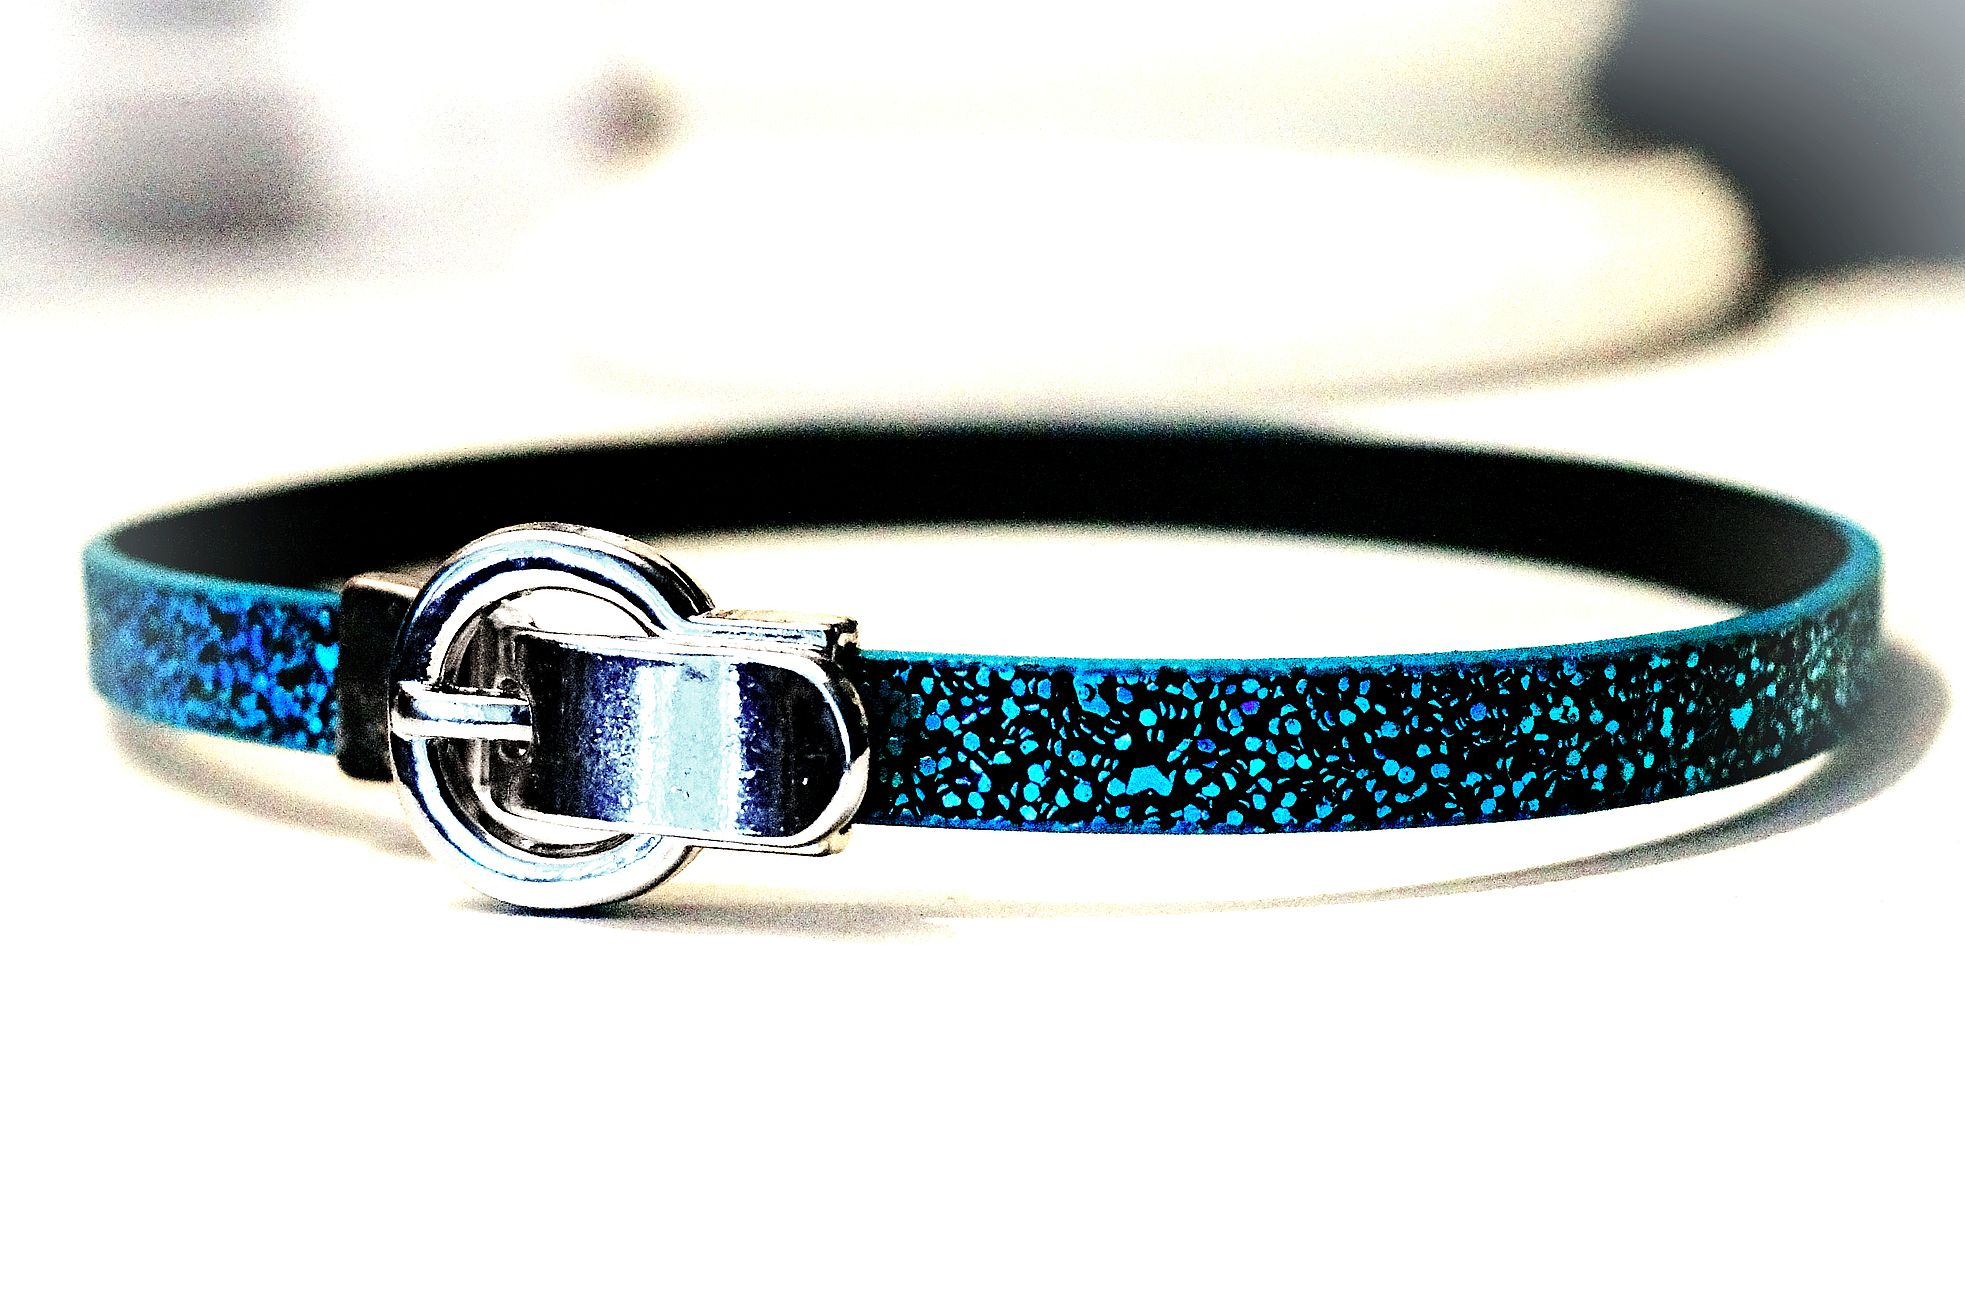 Submissive collar choker necklace Hippie Clothing psychedelic acid wear